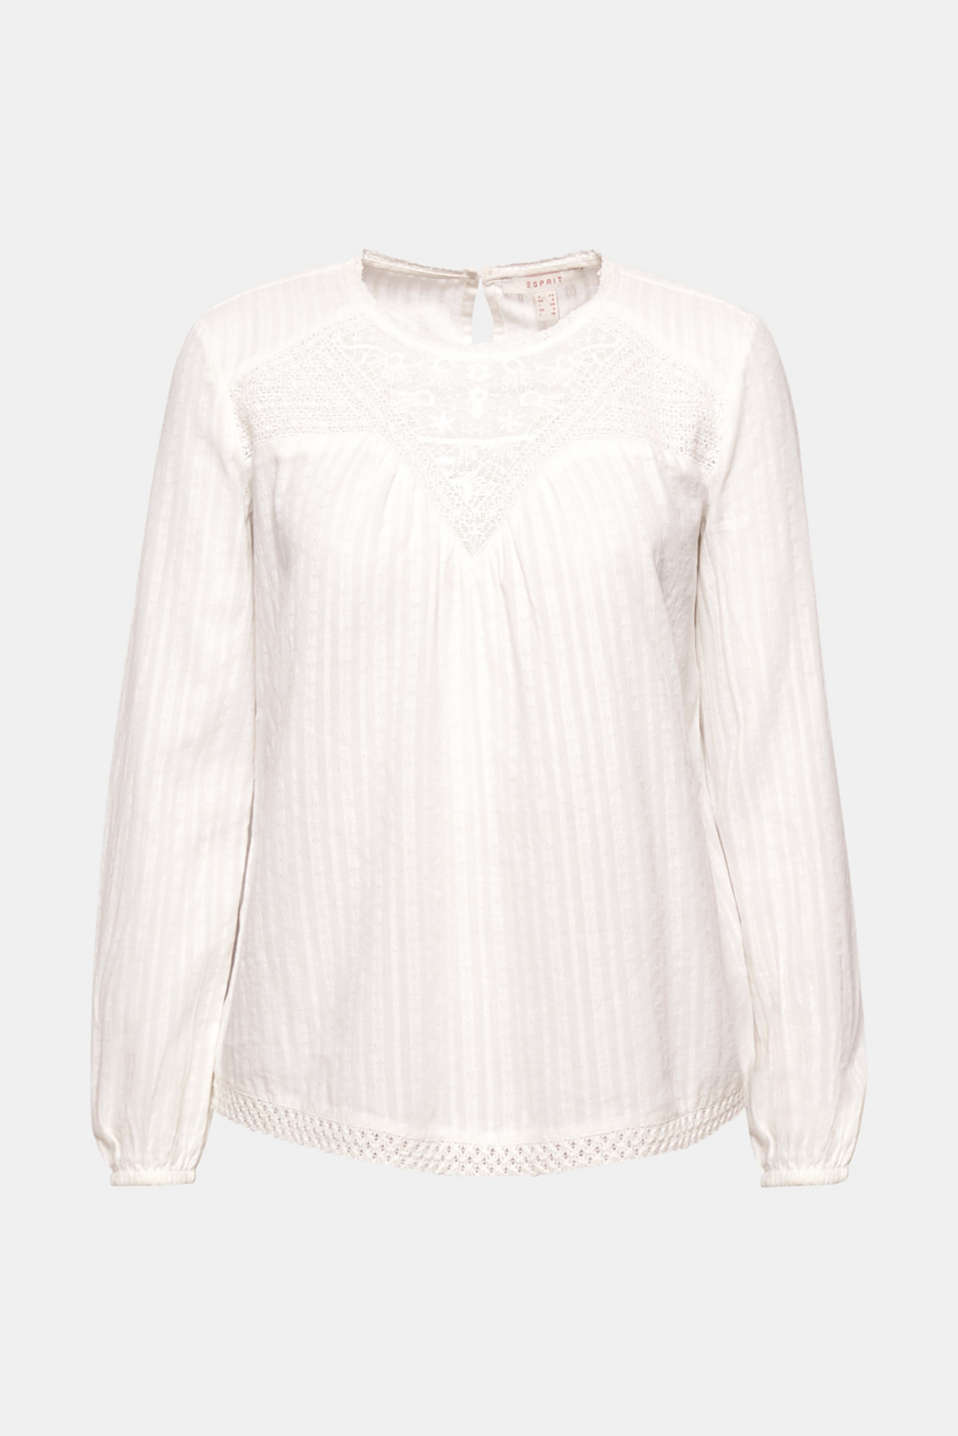 The neckline in broderie anglaise, the fine embroidery and a lace hem give this blouse its romantic flair.